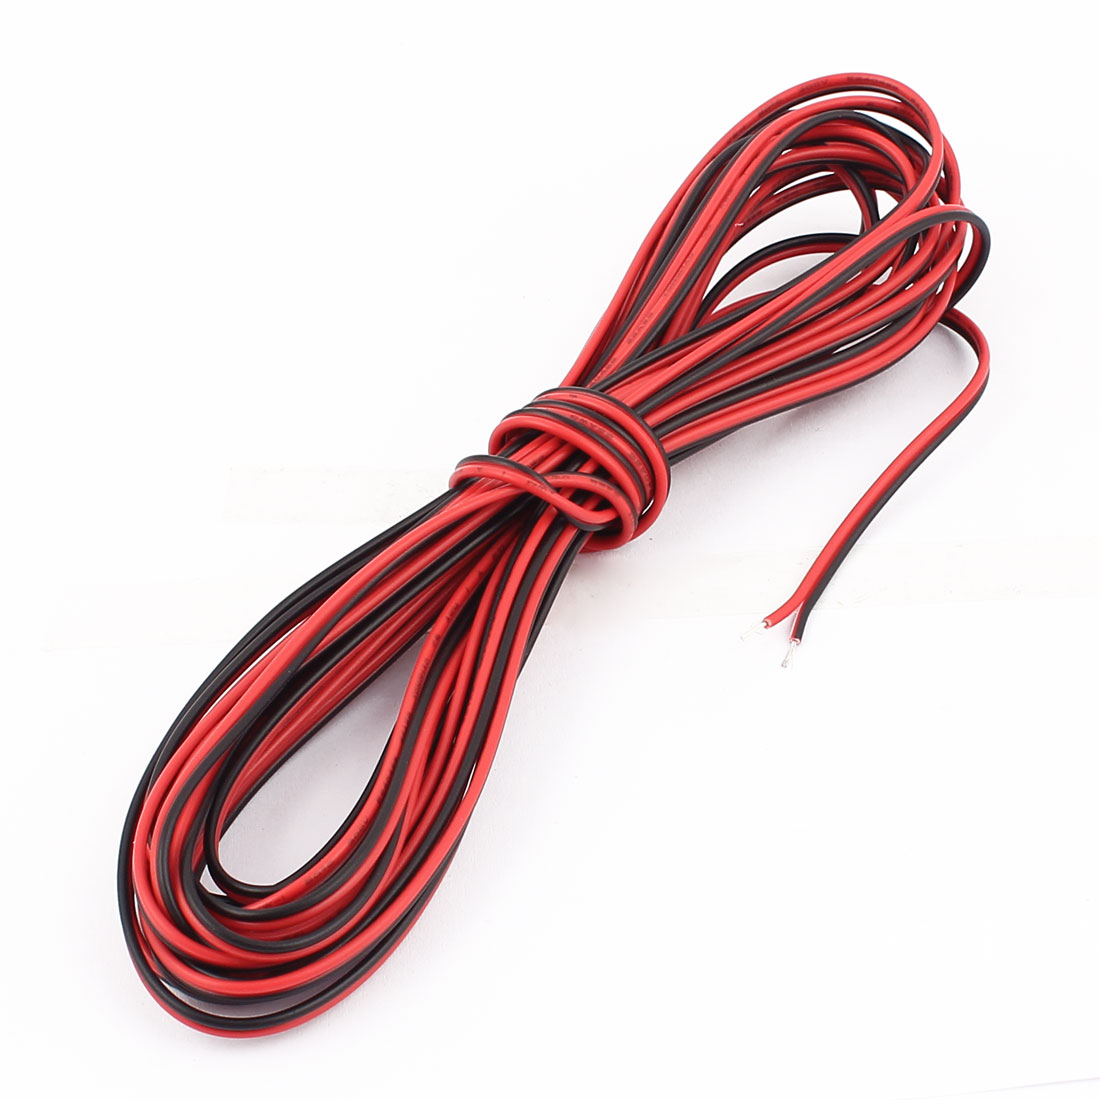 22AWG Indoor Outdoor PVC Insulated Electrical Wire Cable Black Red 6 Meters